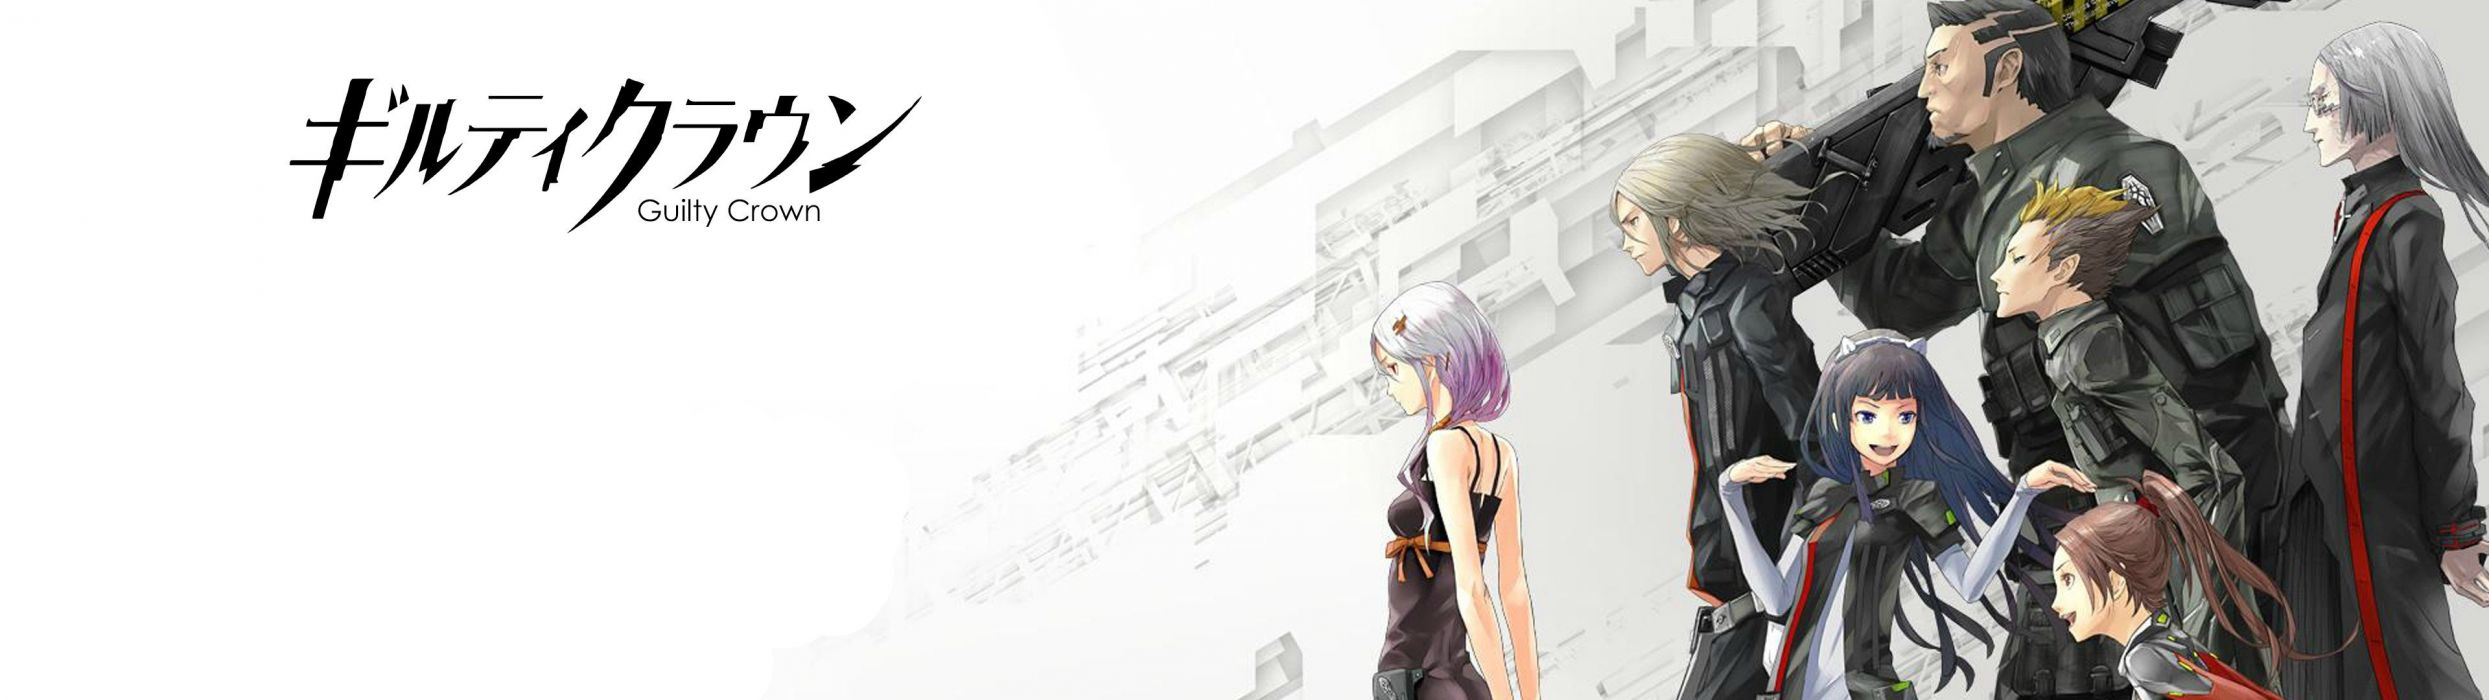 Guilty Crown (31) wallpaper